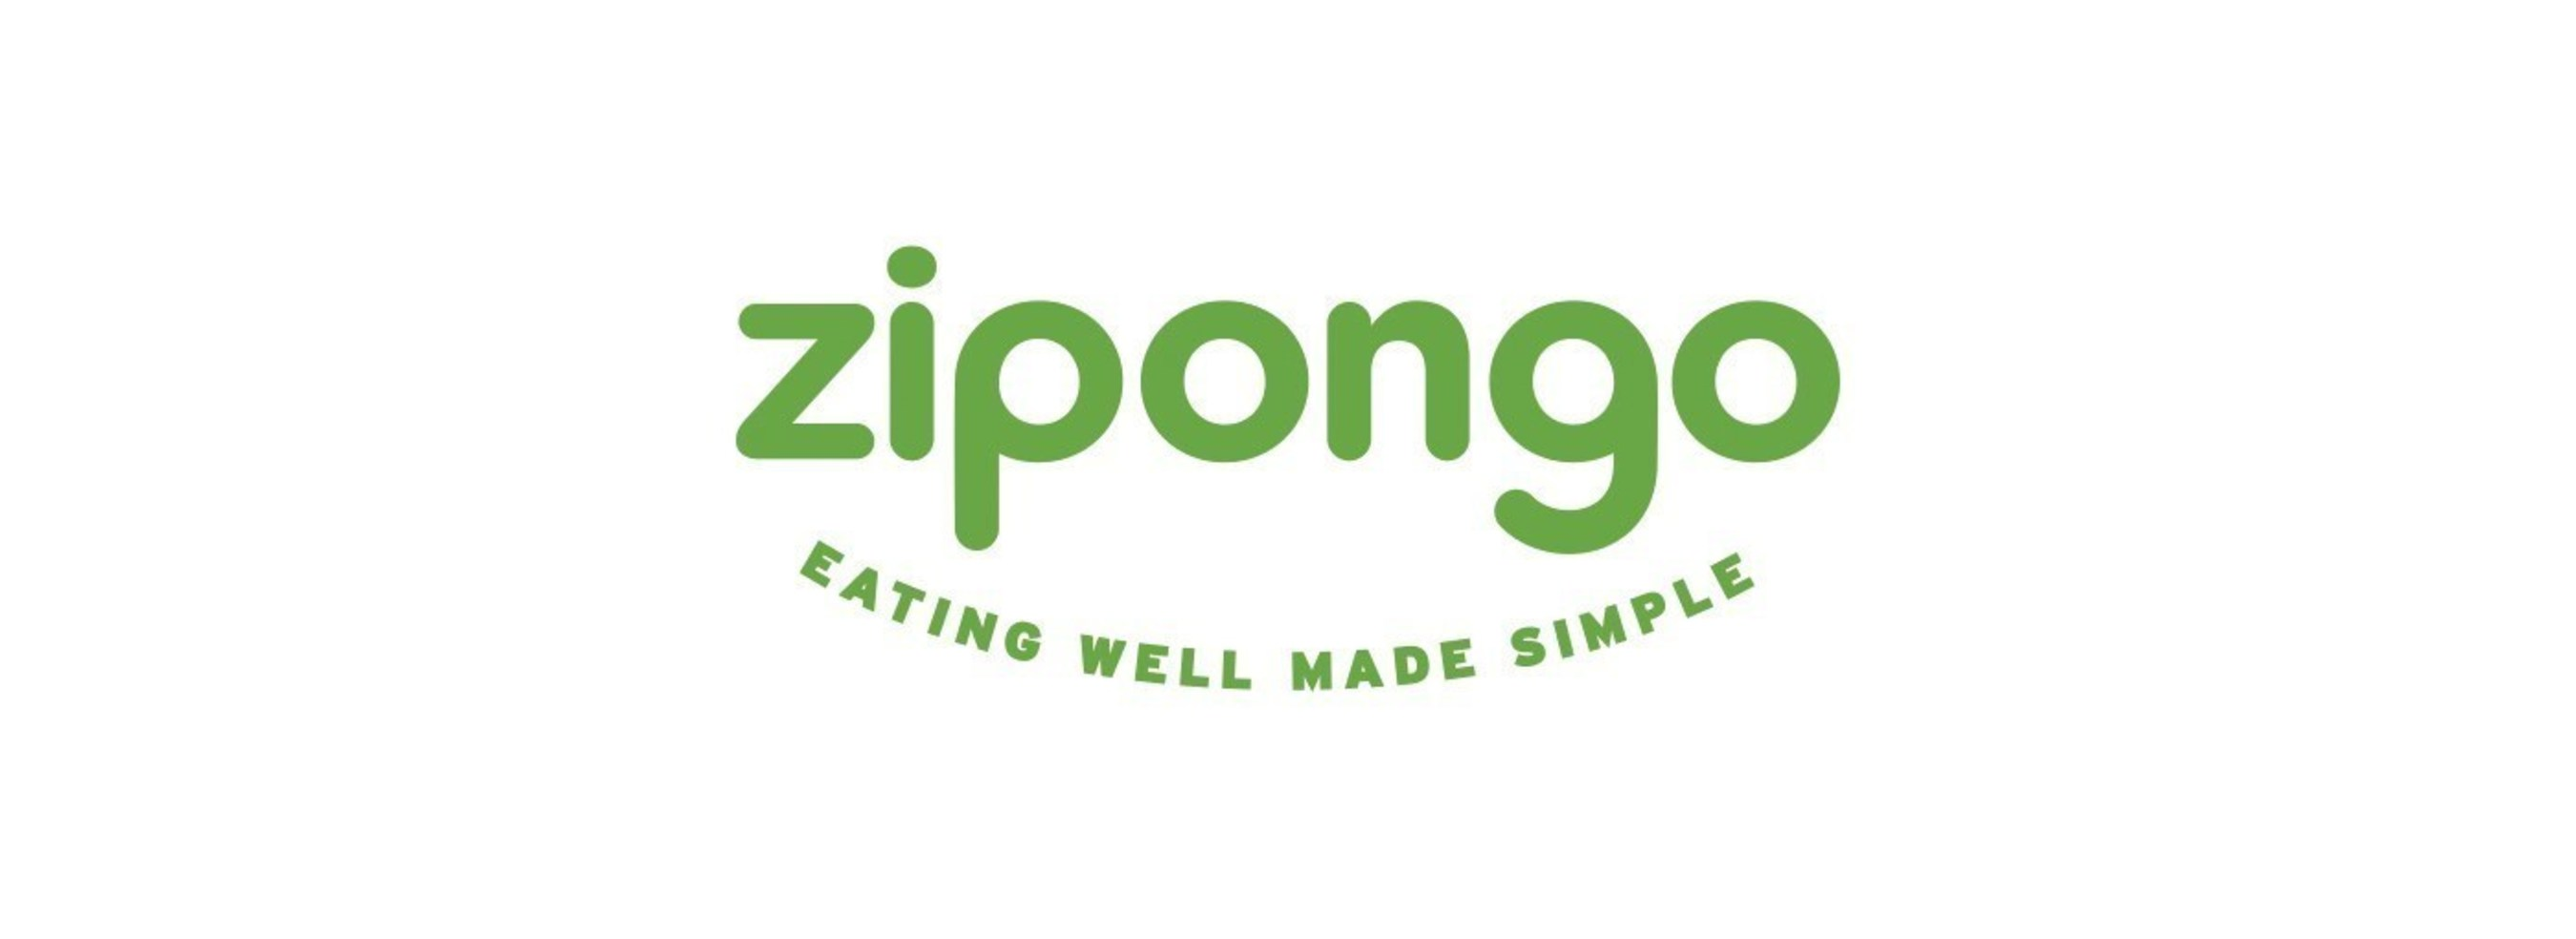 San Francisco-based Zipongo is a digital health company with a mission to positively impact health and reduce ...